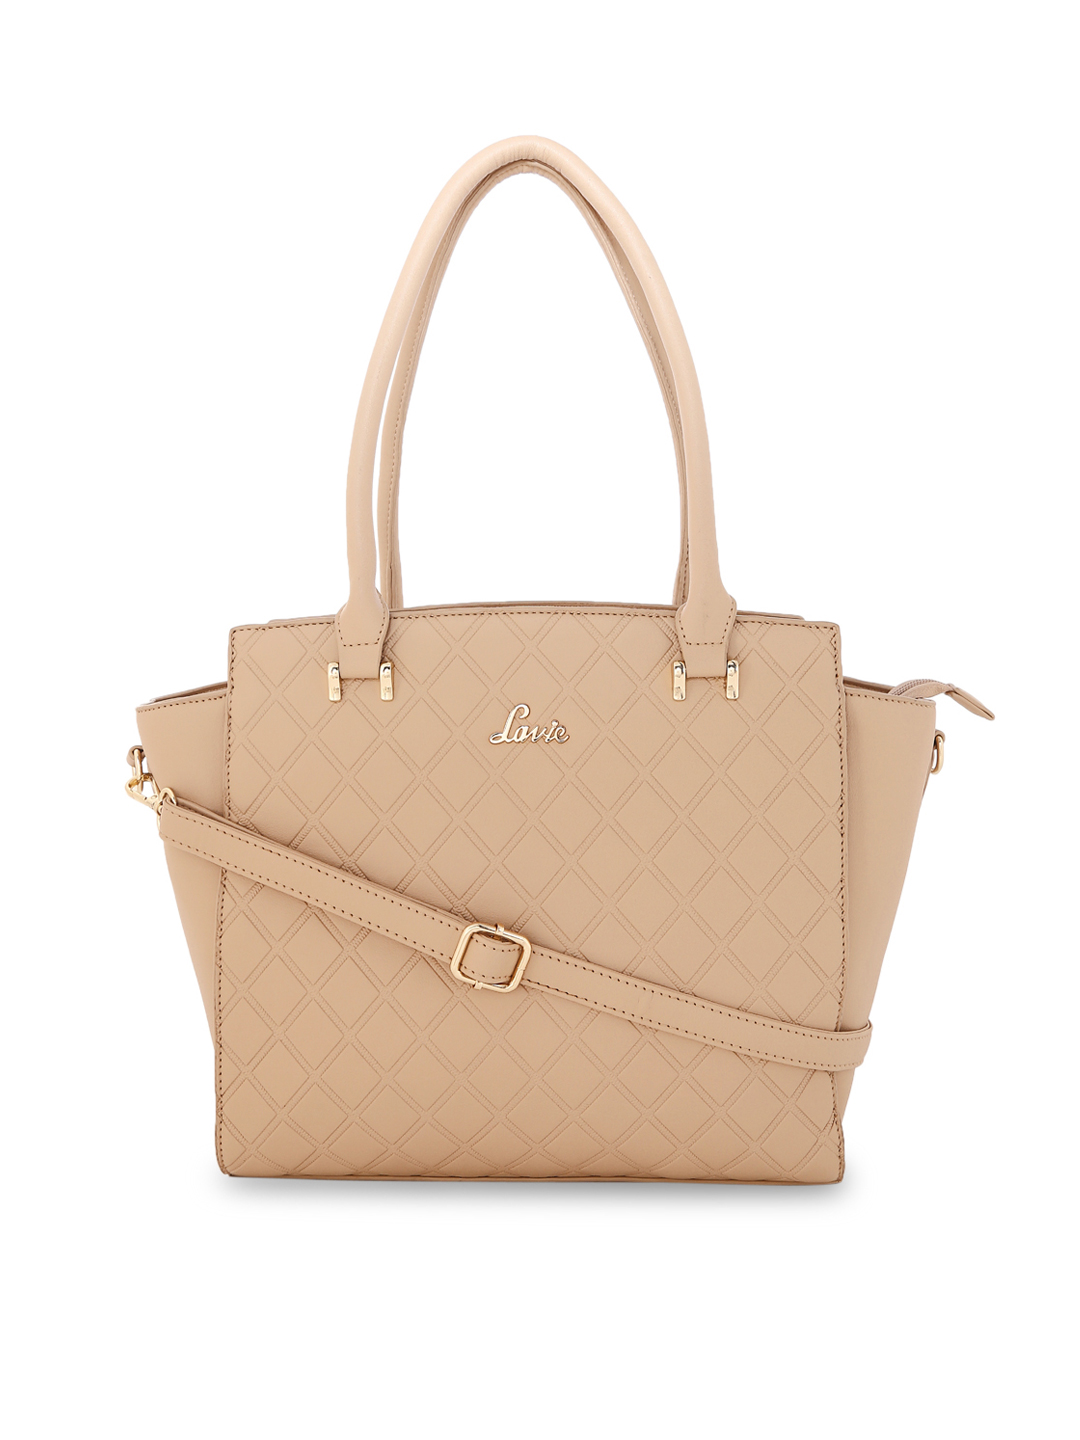 Lavie Handbag